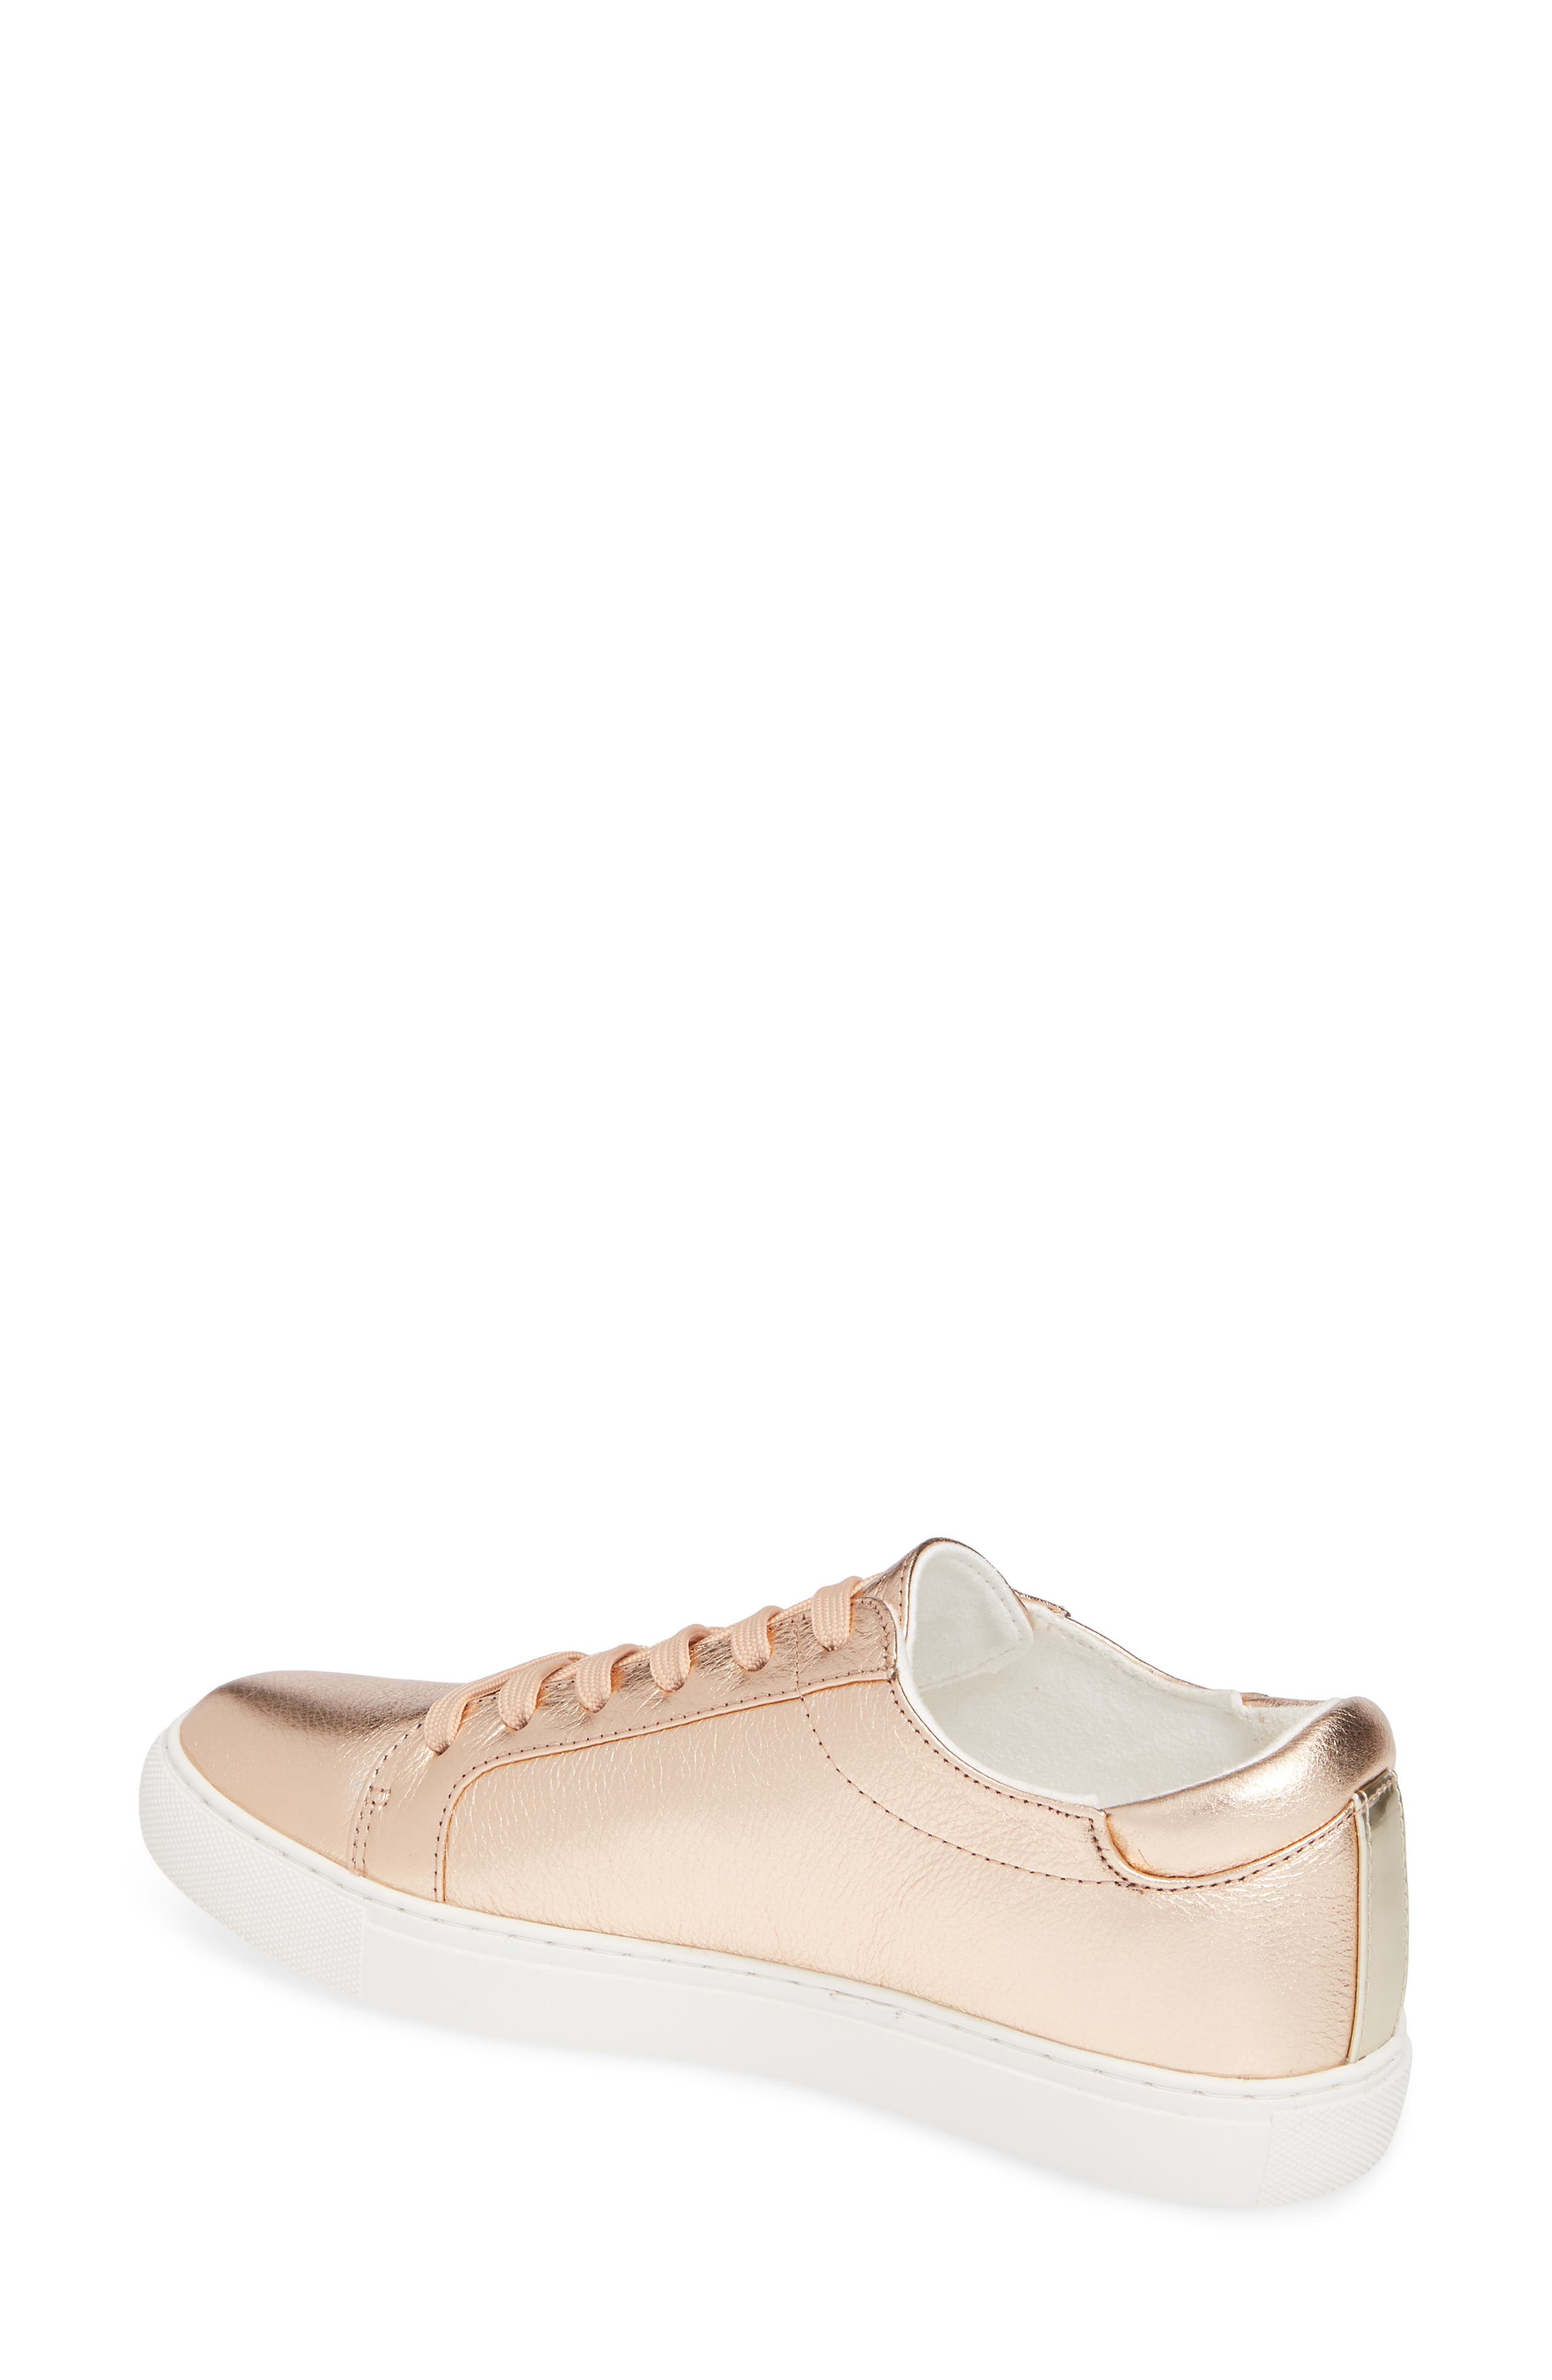 KENNETH COLE NEW YORK, 'Kam' Sneaker, Alternate thumbnail 2, color, ROSE GOLD LEATHER